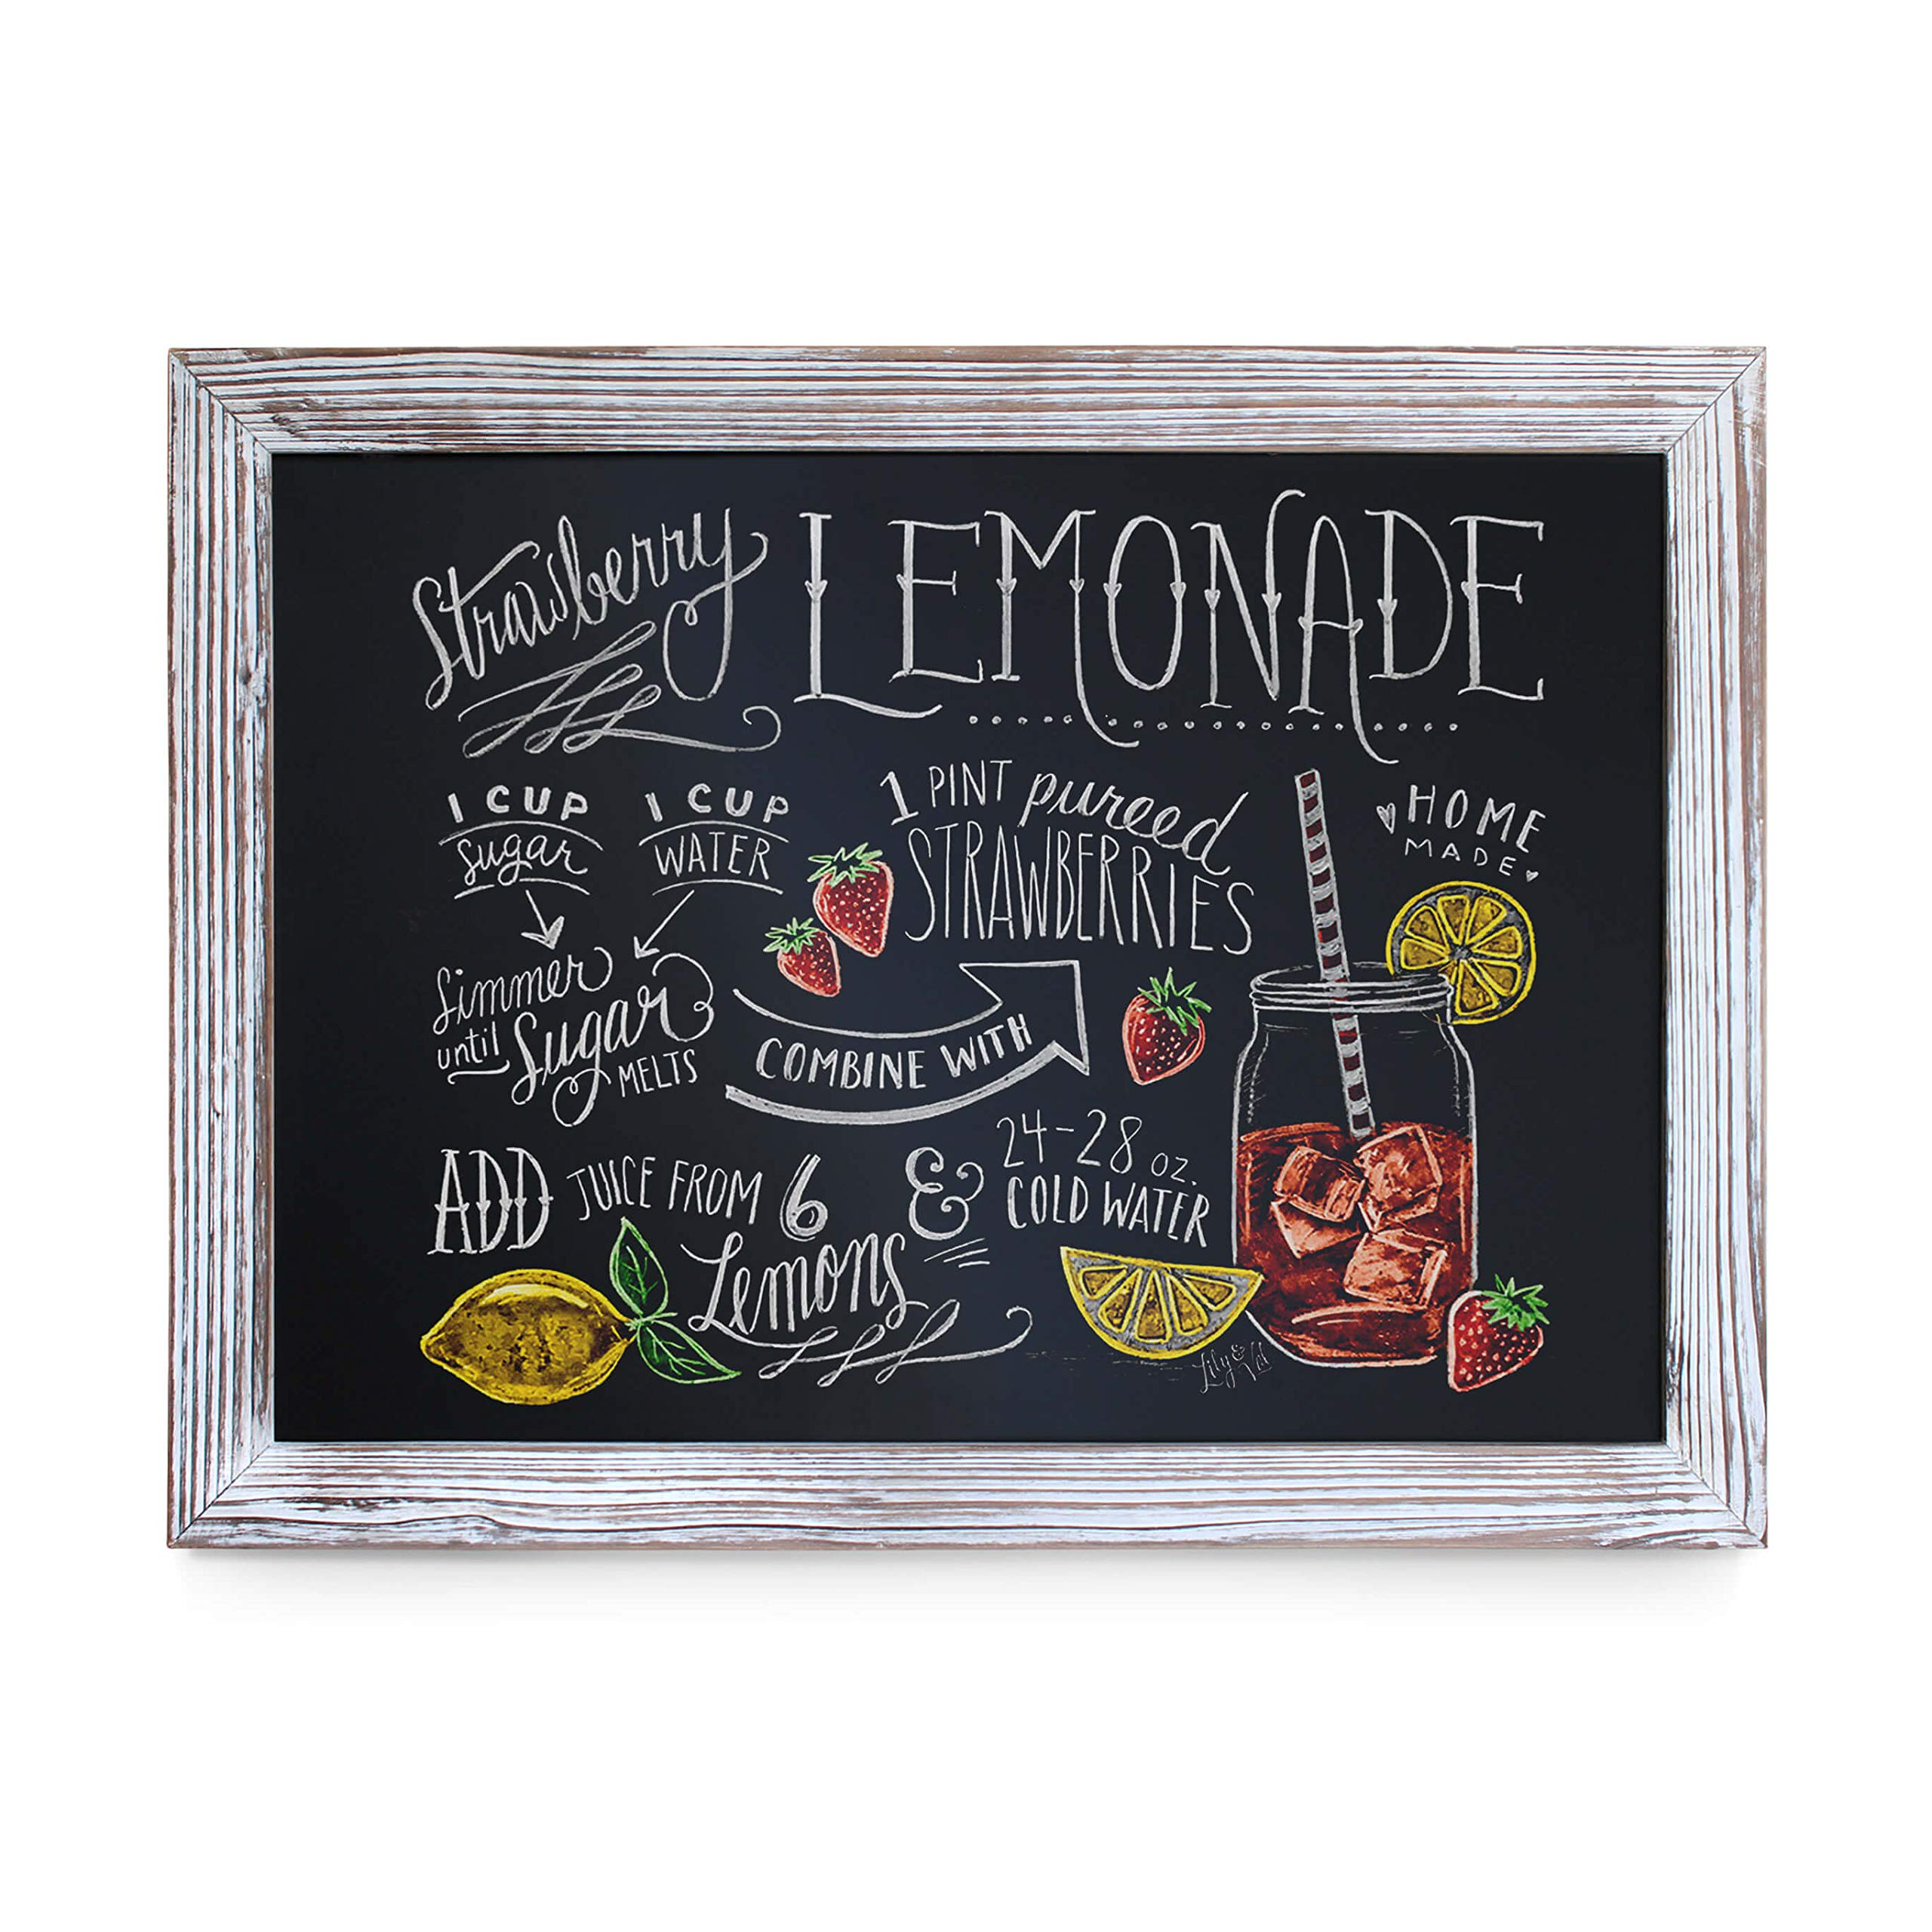 Rustic Whitewashed Magnetic Wall Chalkboard, Large Size 18'' x 24'', Framed Chalkboard - Decorative Magnet Board Great for Kitchen Decor, Weddings, Restaurant Menus and More! ... (18'' x 24'')... by HBCY Creations